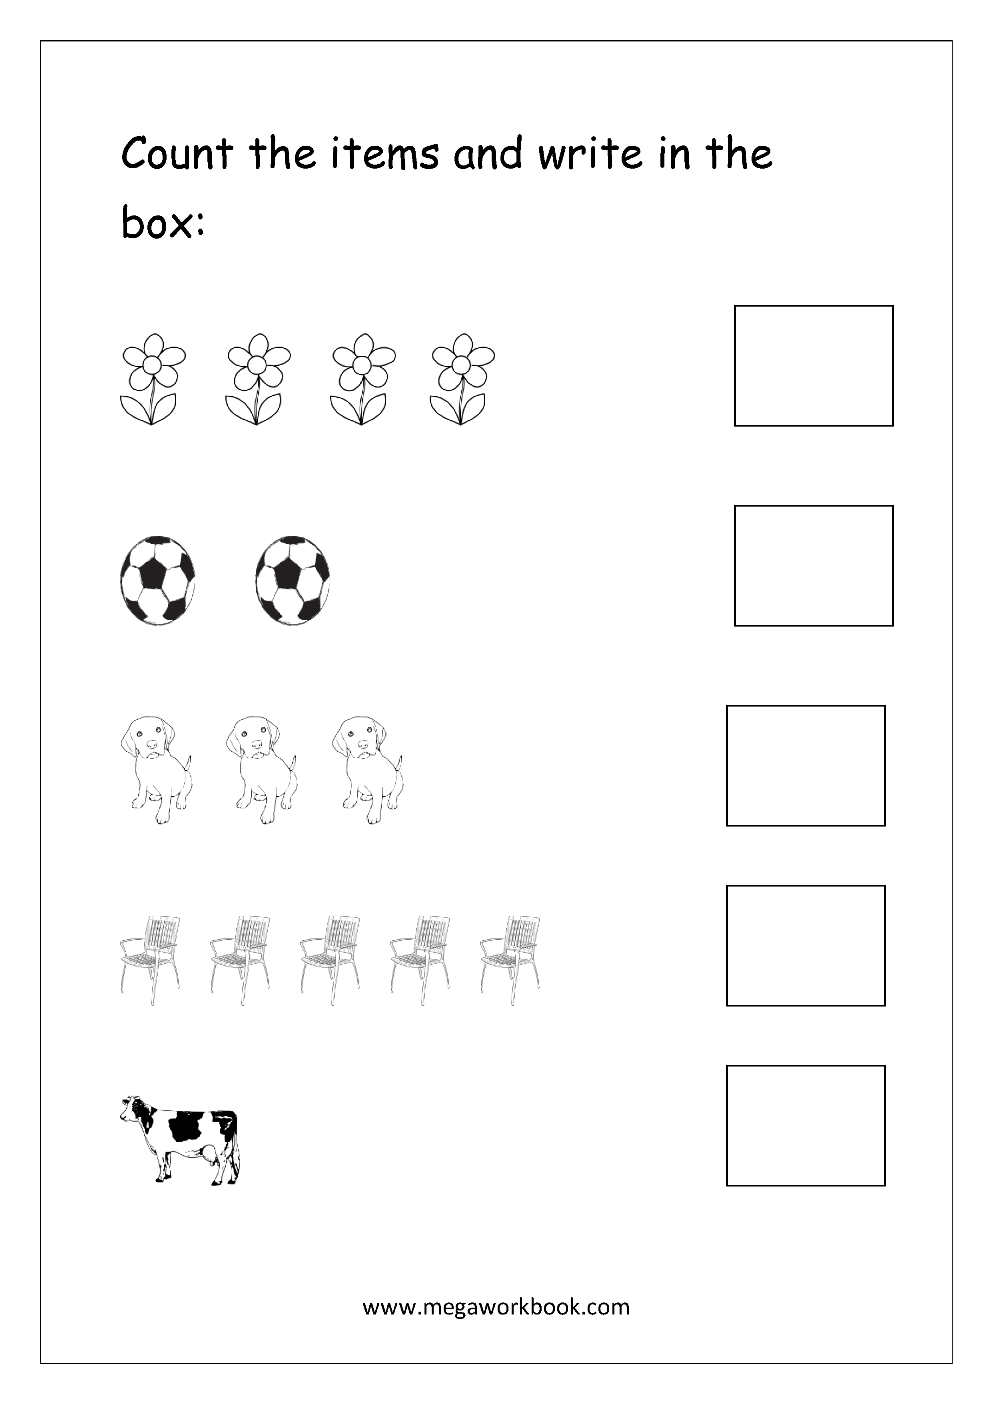 Free Printable Number Counting Worksheets - Count and Match - Count ...